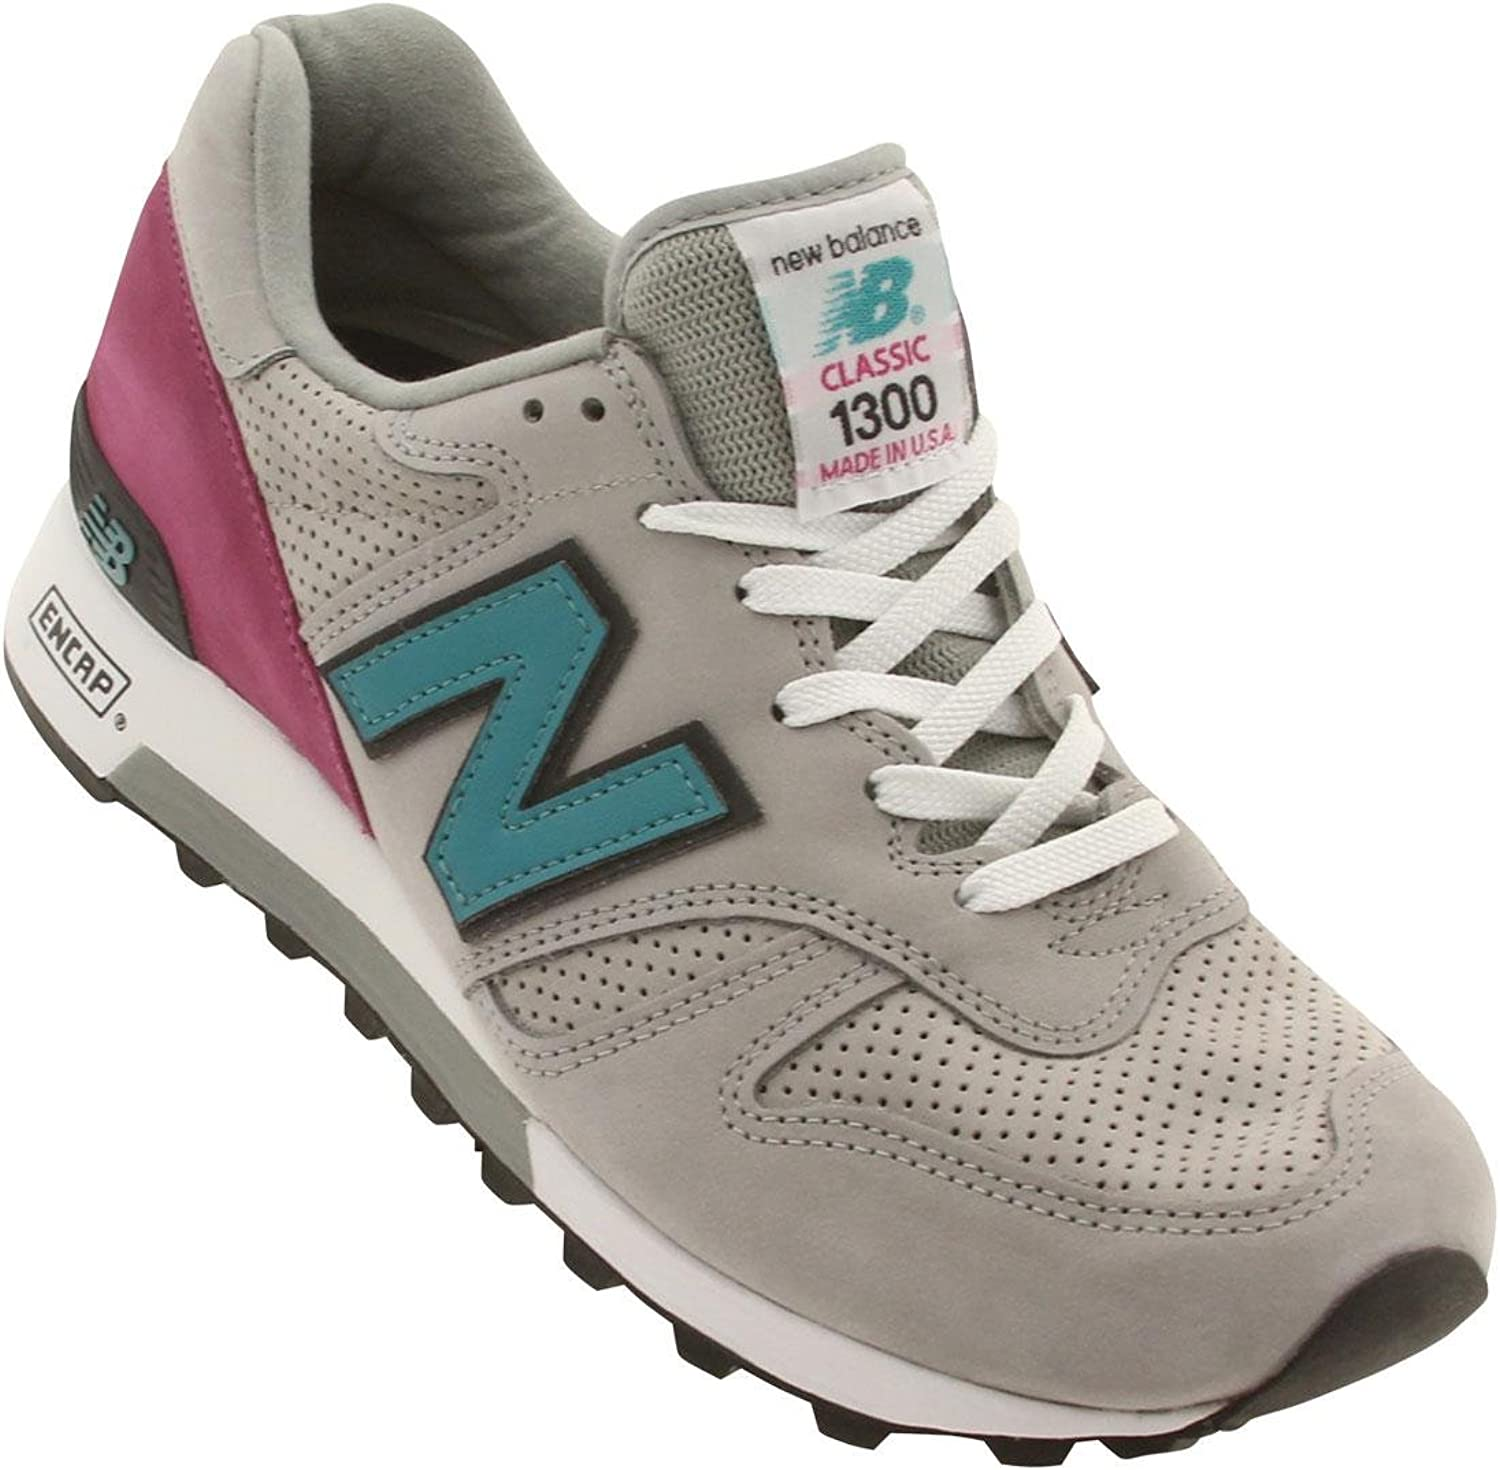 New New New Balance M1300DGR Made in USA (Light Grey / Turquoise / Pink) B00OL3PBD8  f7b8a4